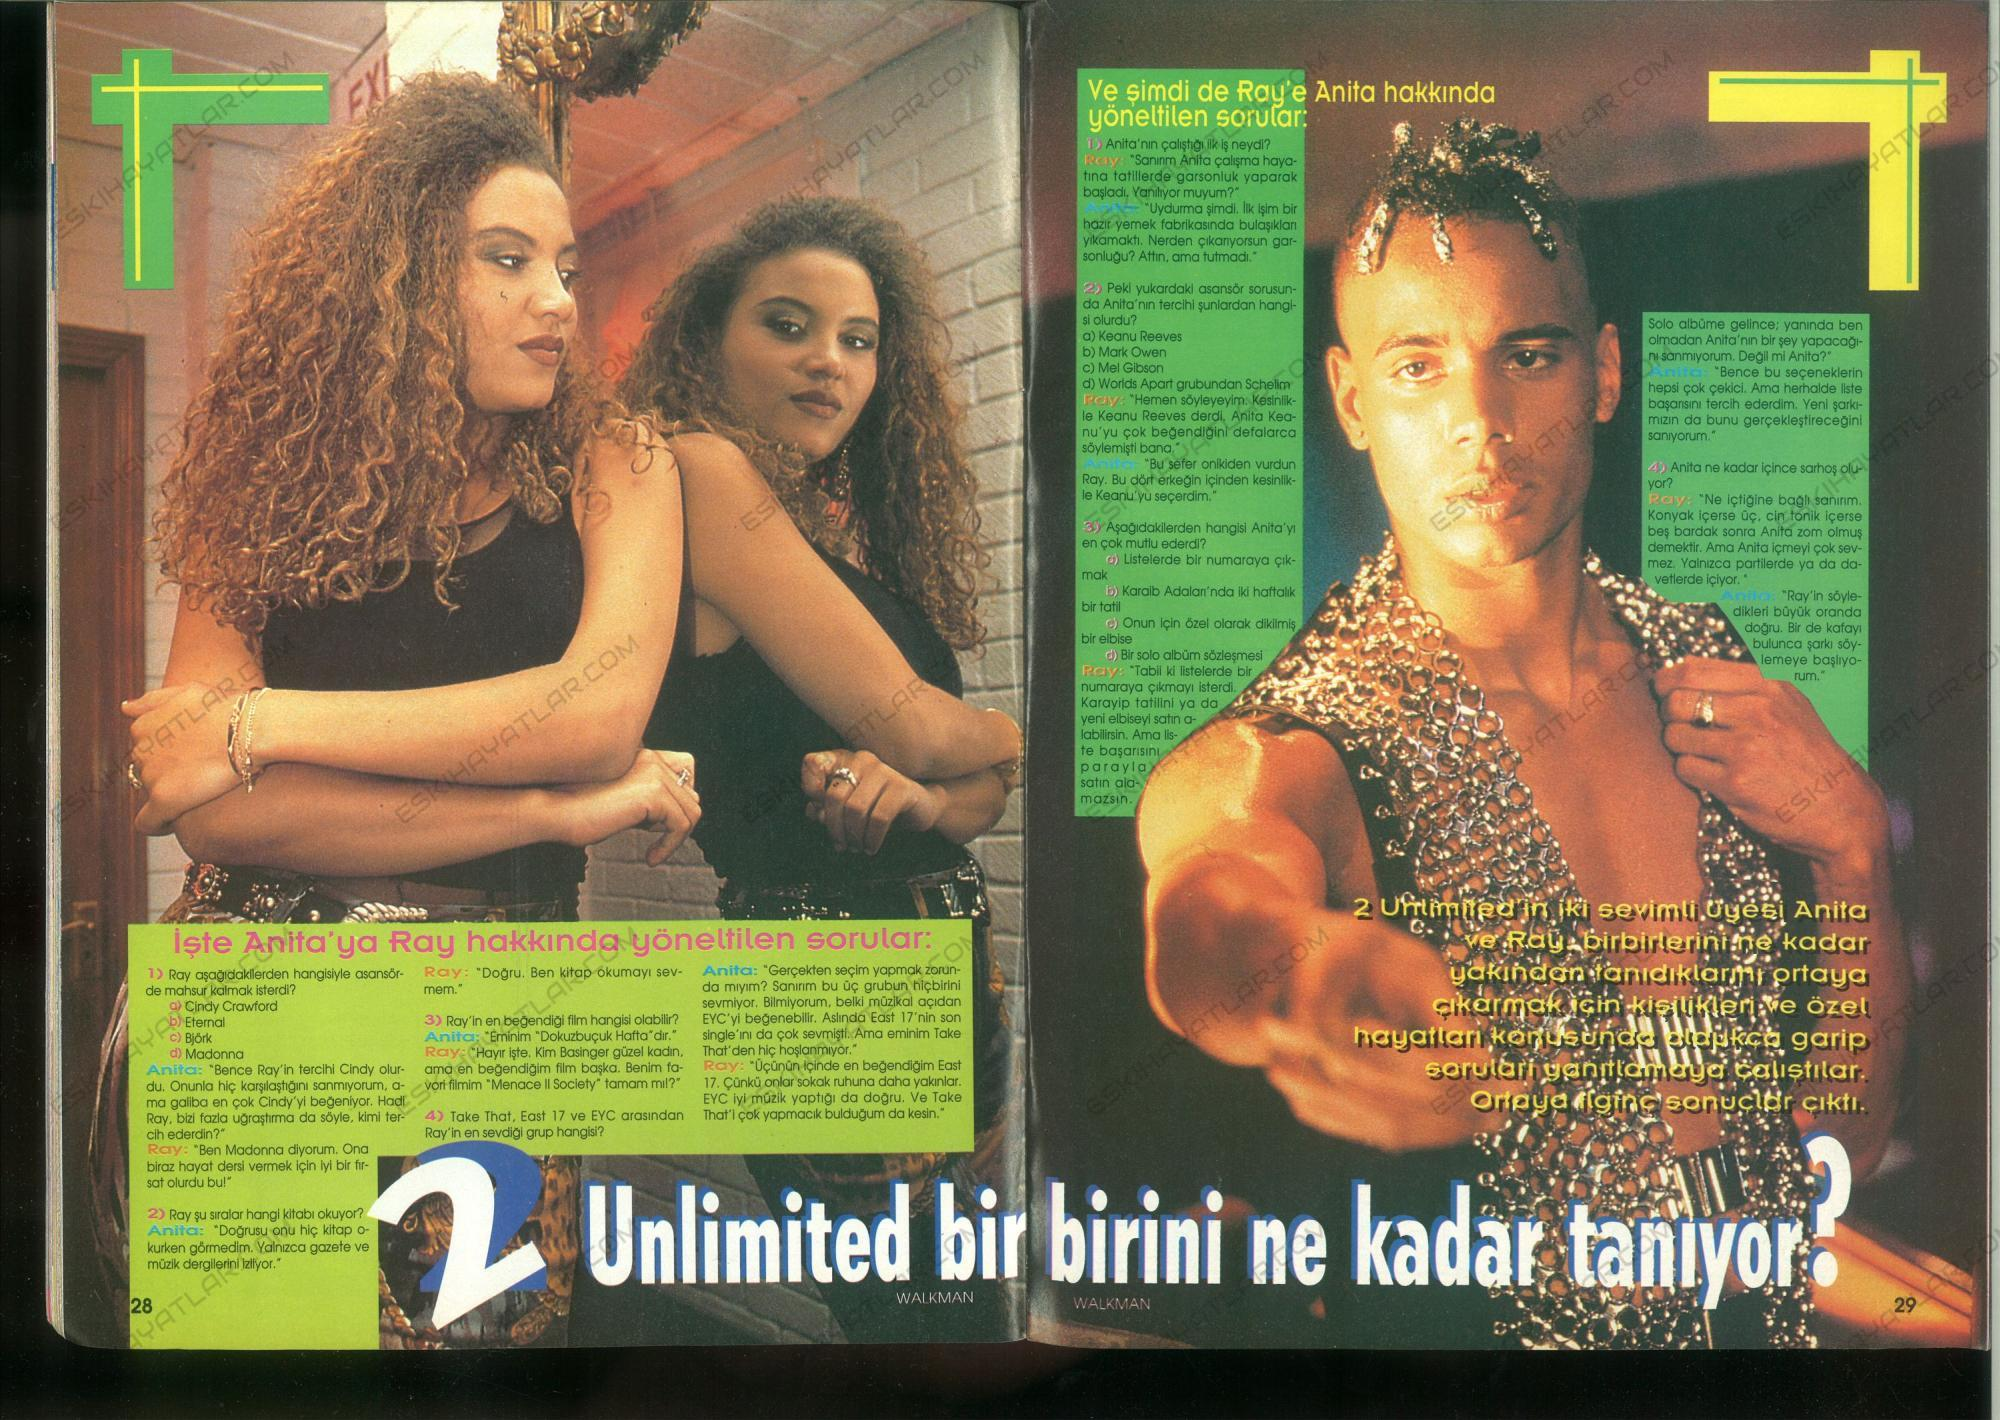 2-unlimited-grubu-no-limit-sarkisi-eurodance-diskotek-gunleri (1) (1)